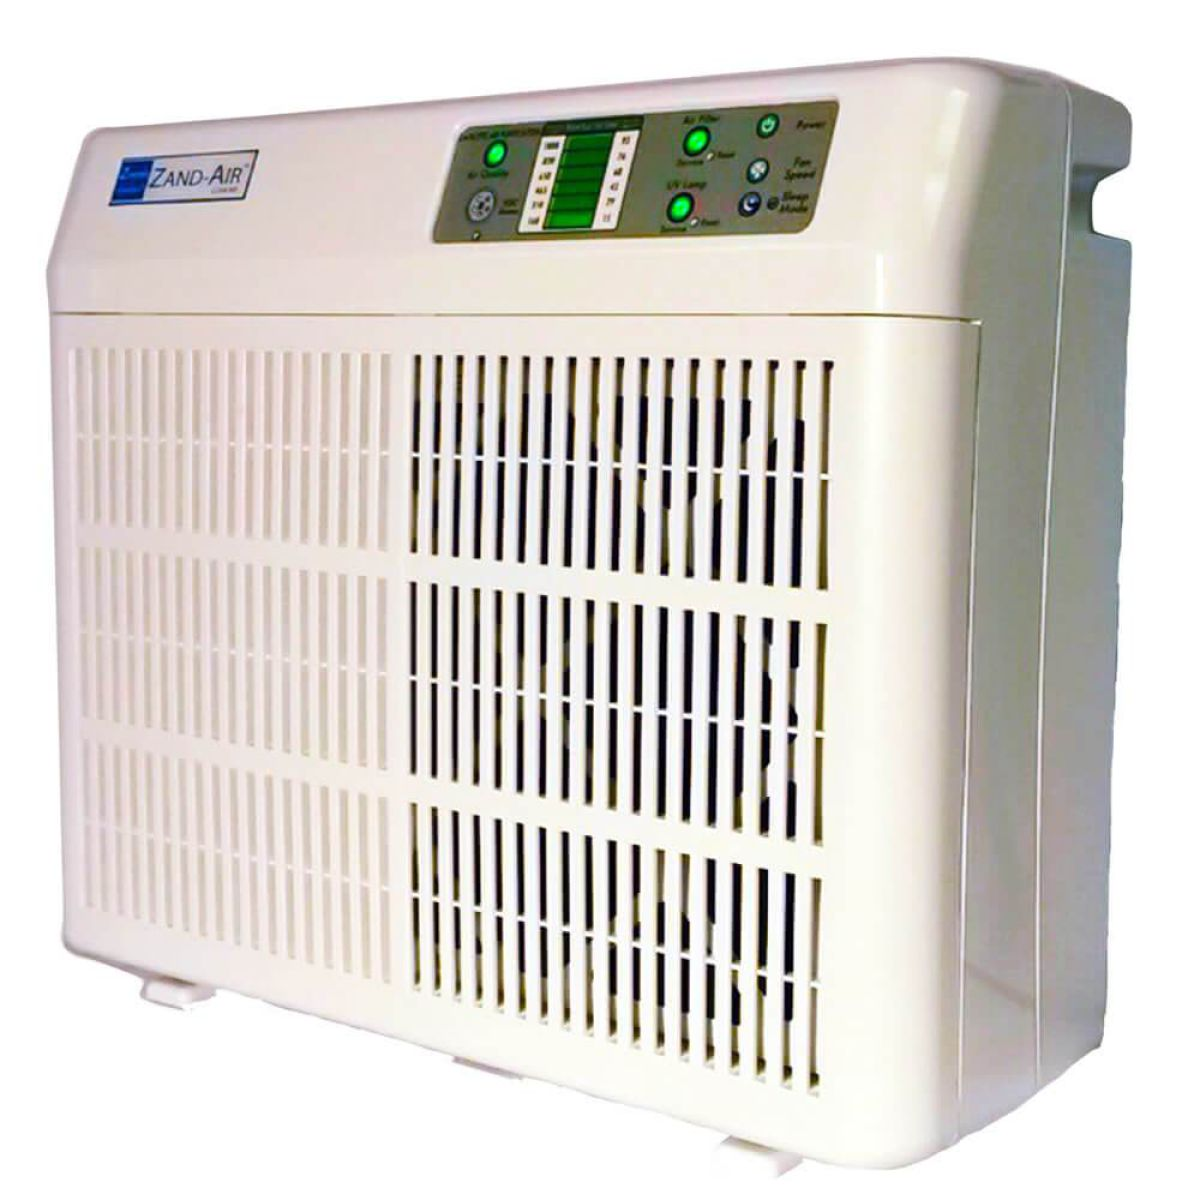 ZAND-AIR™ 100C Air Filtration / Purification Systems